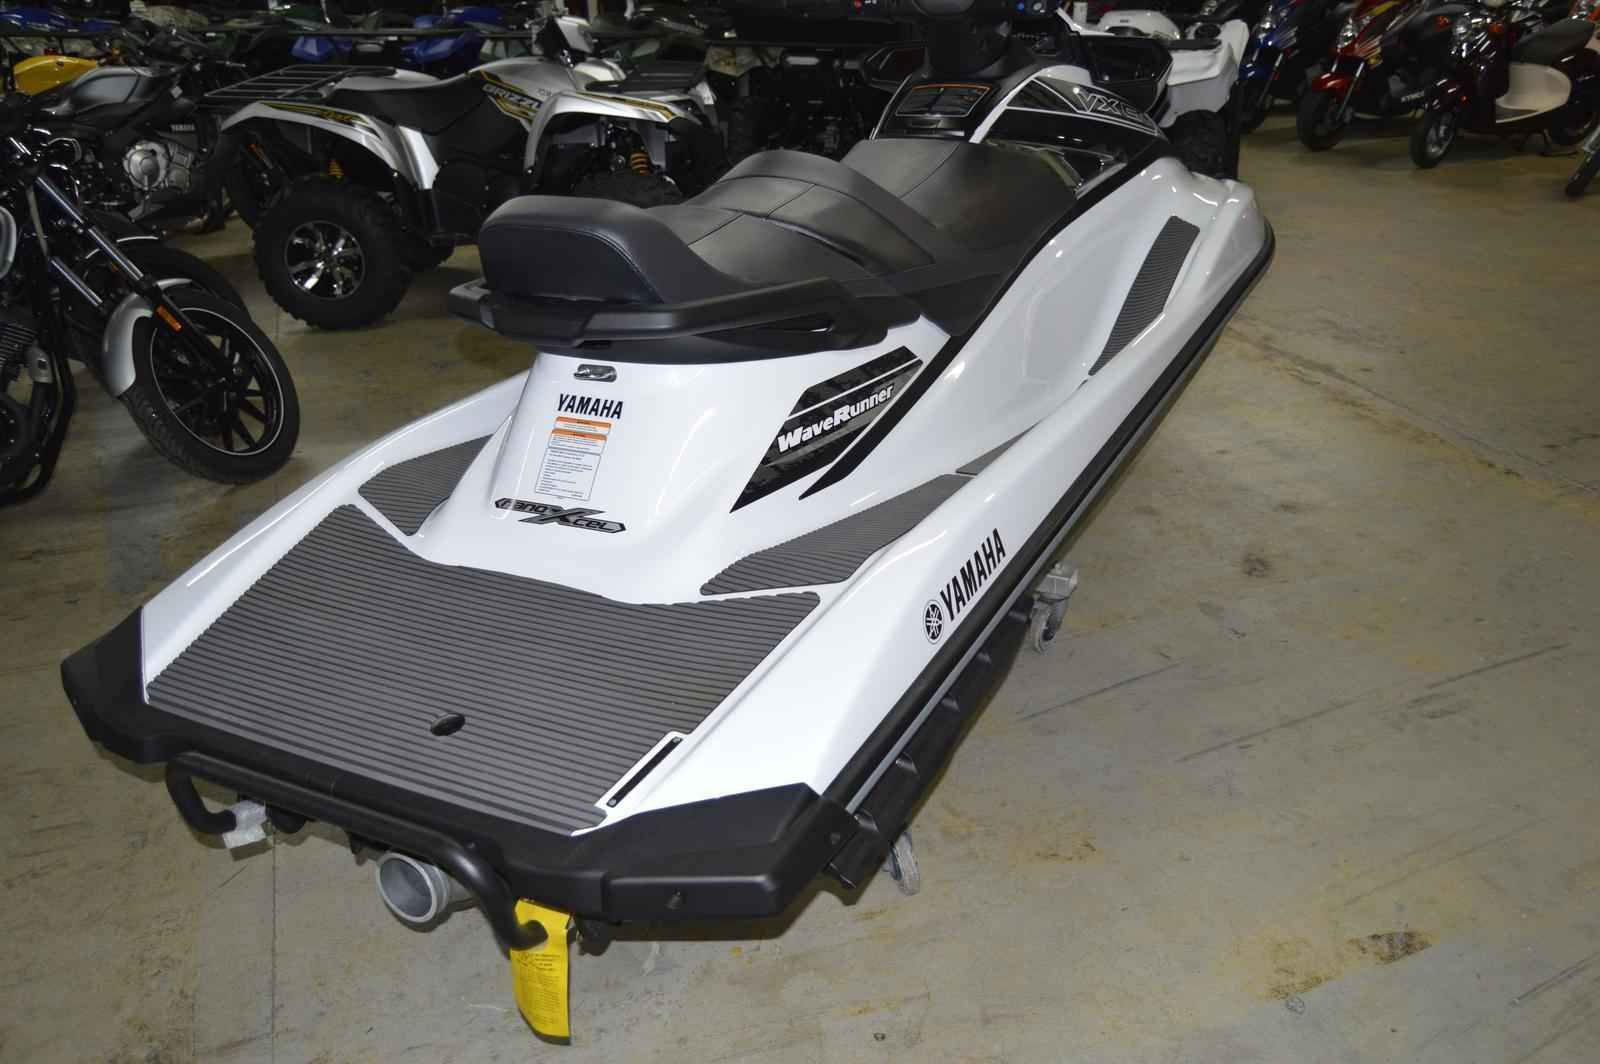 New 2016 yamaha vx cruiser jet skis for sale in florida fl for Yamaha jet skis